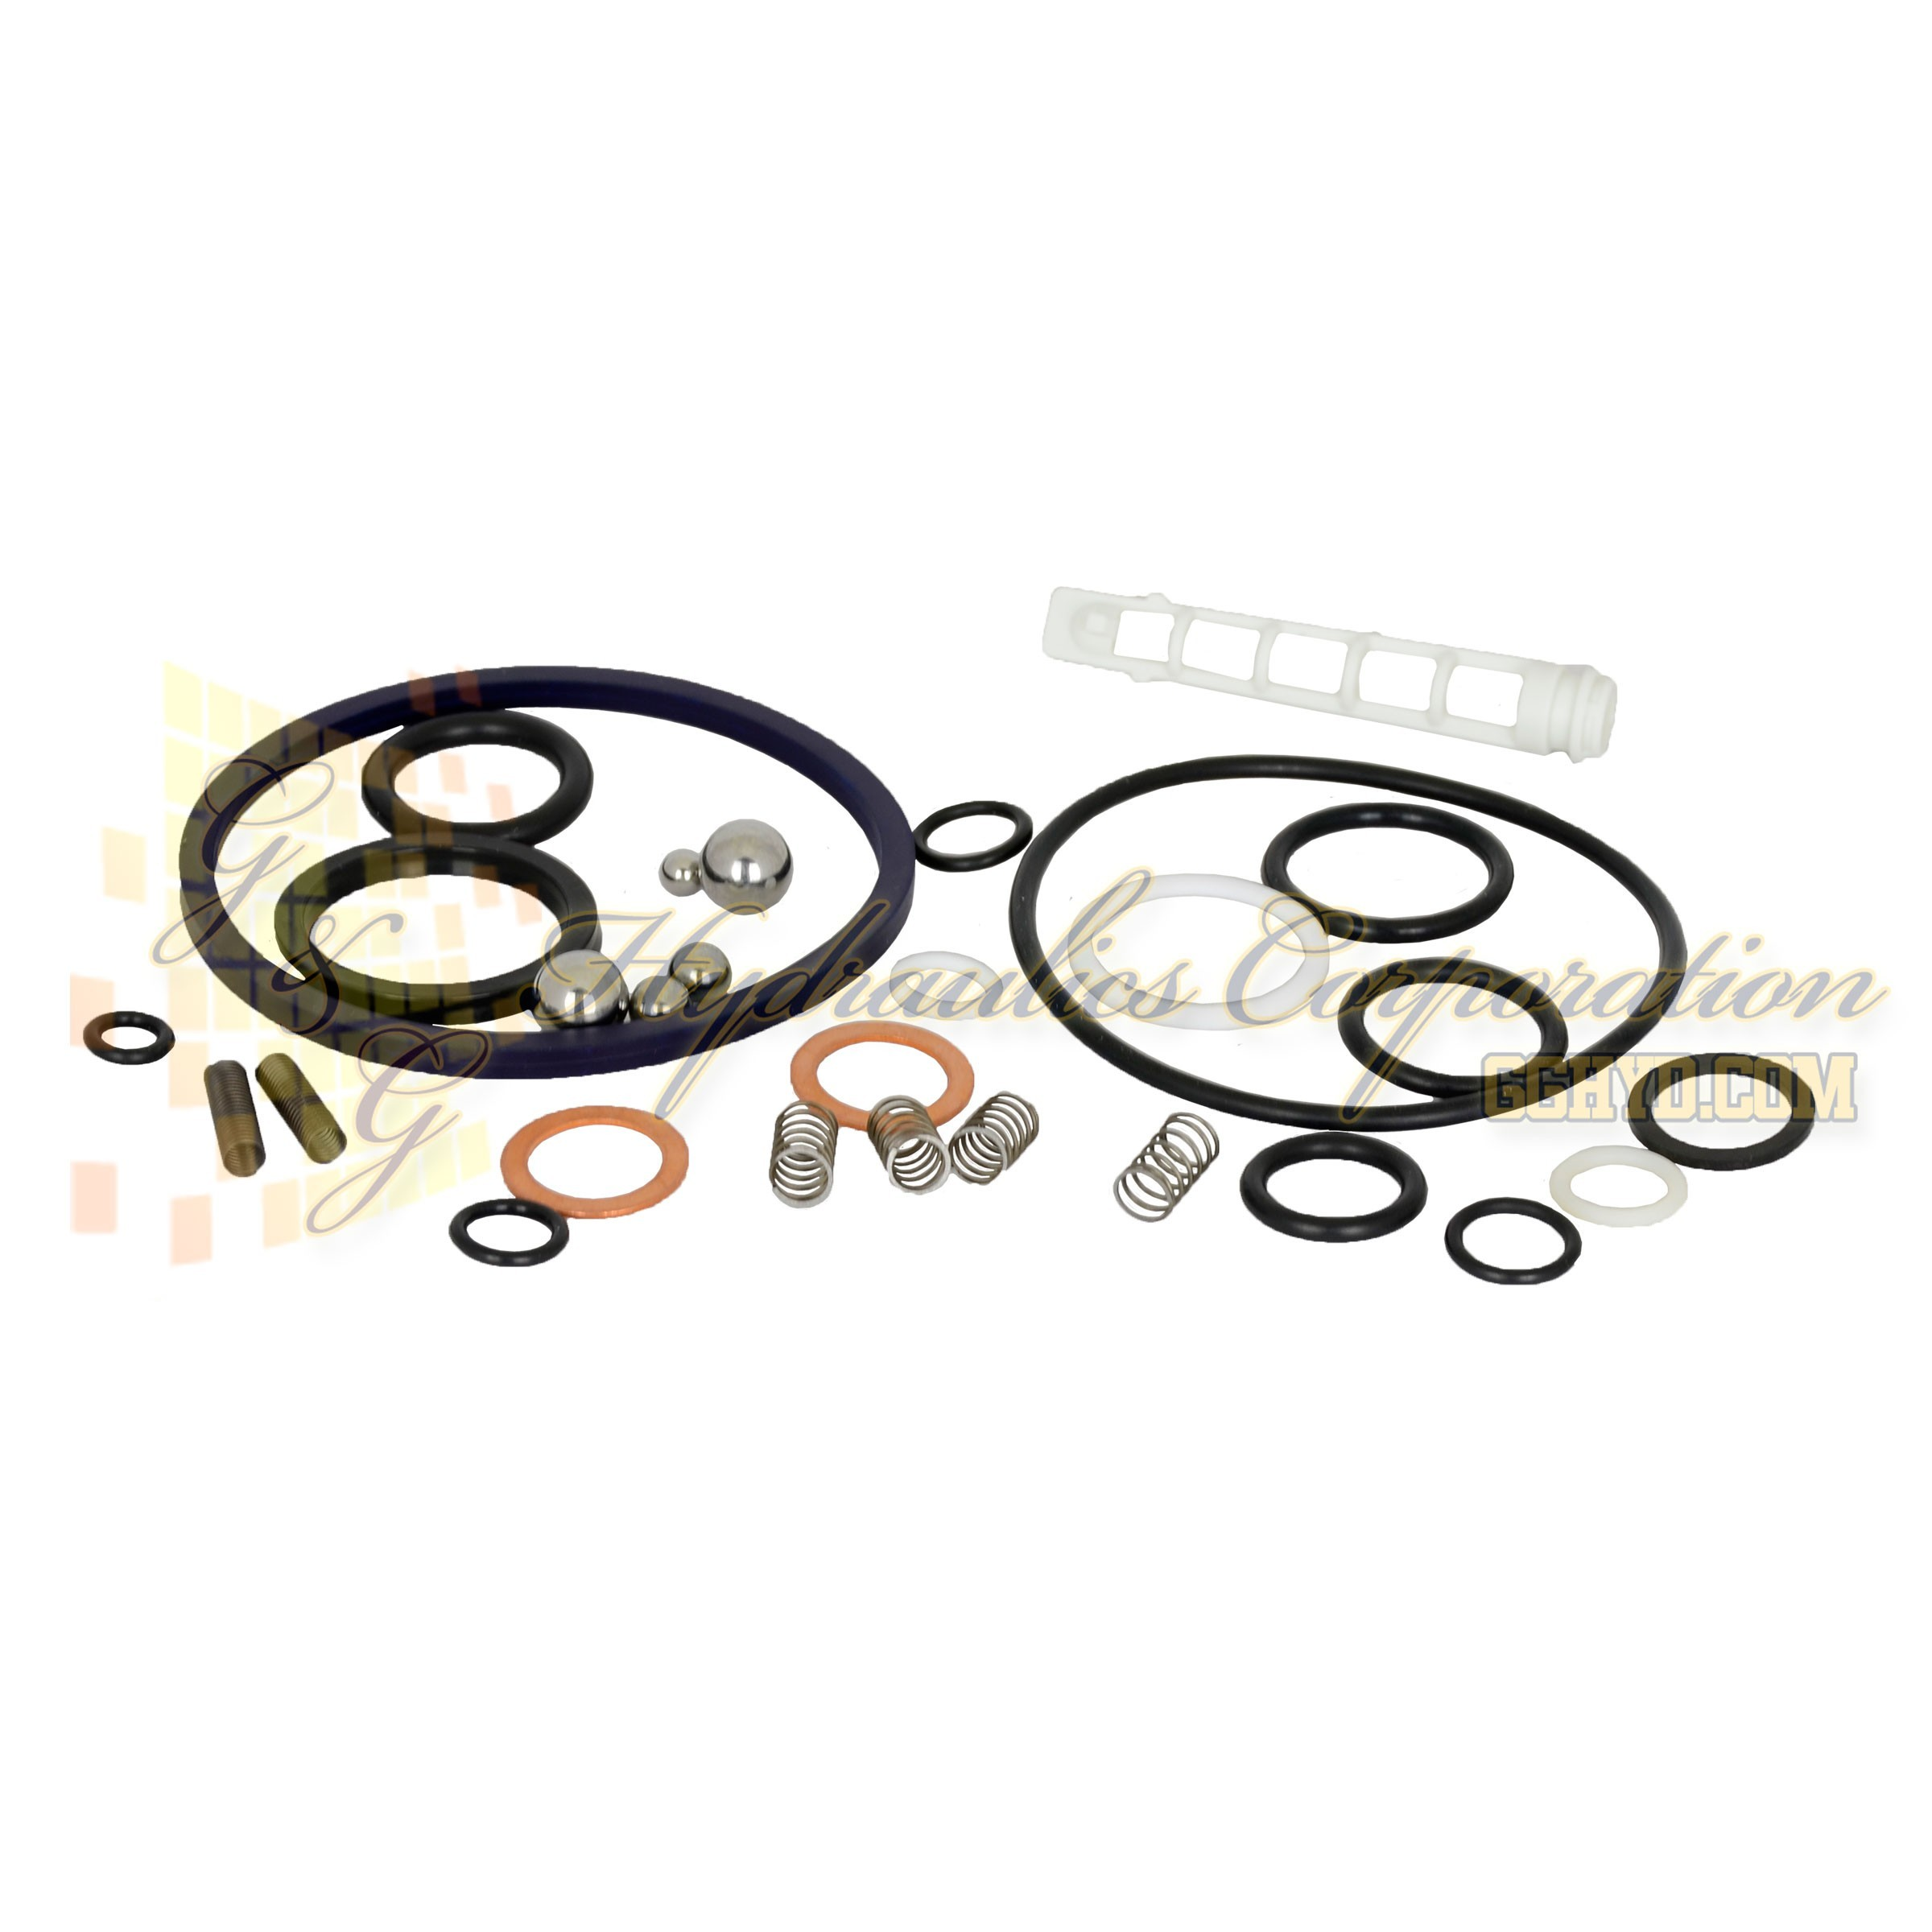 300831 SPX Power Team Seal Kits for Hydraulic PA6 Series Air Pump, Single-Acting UPC #662536295253